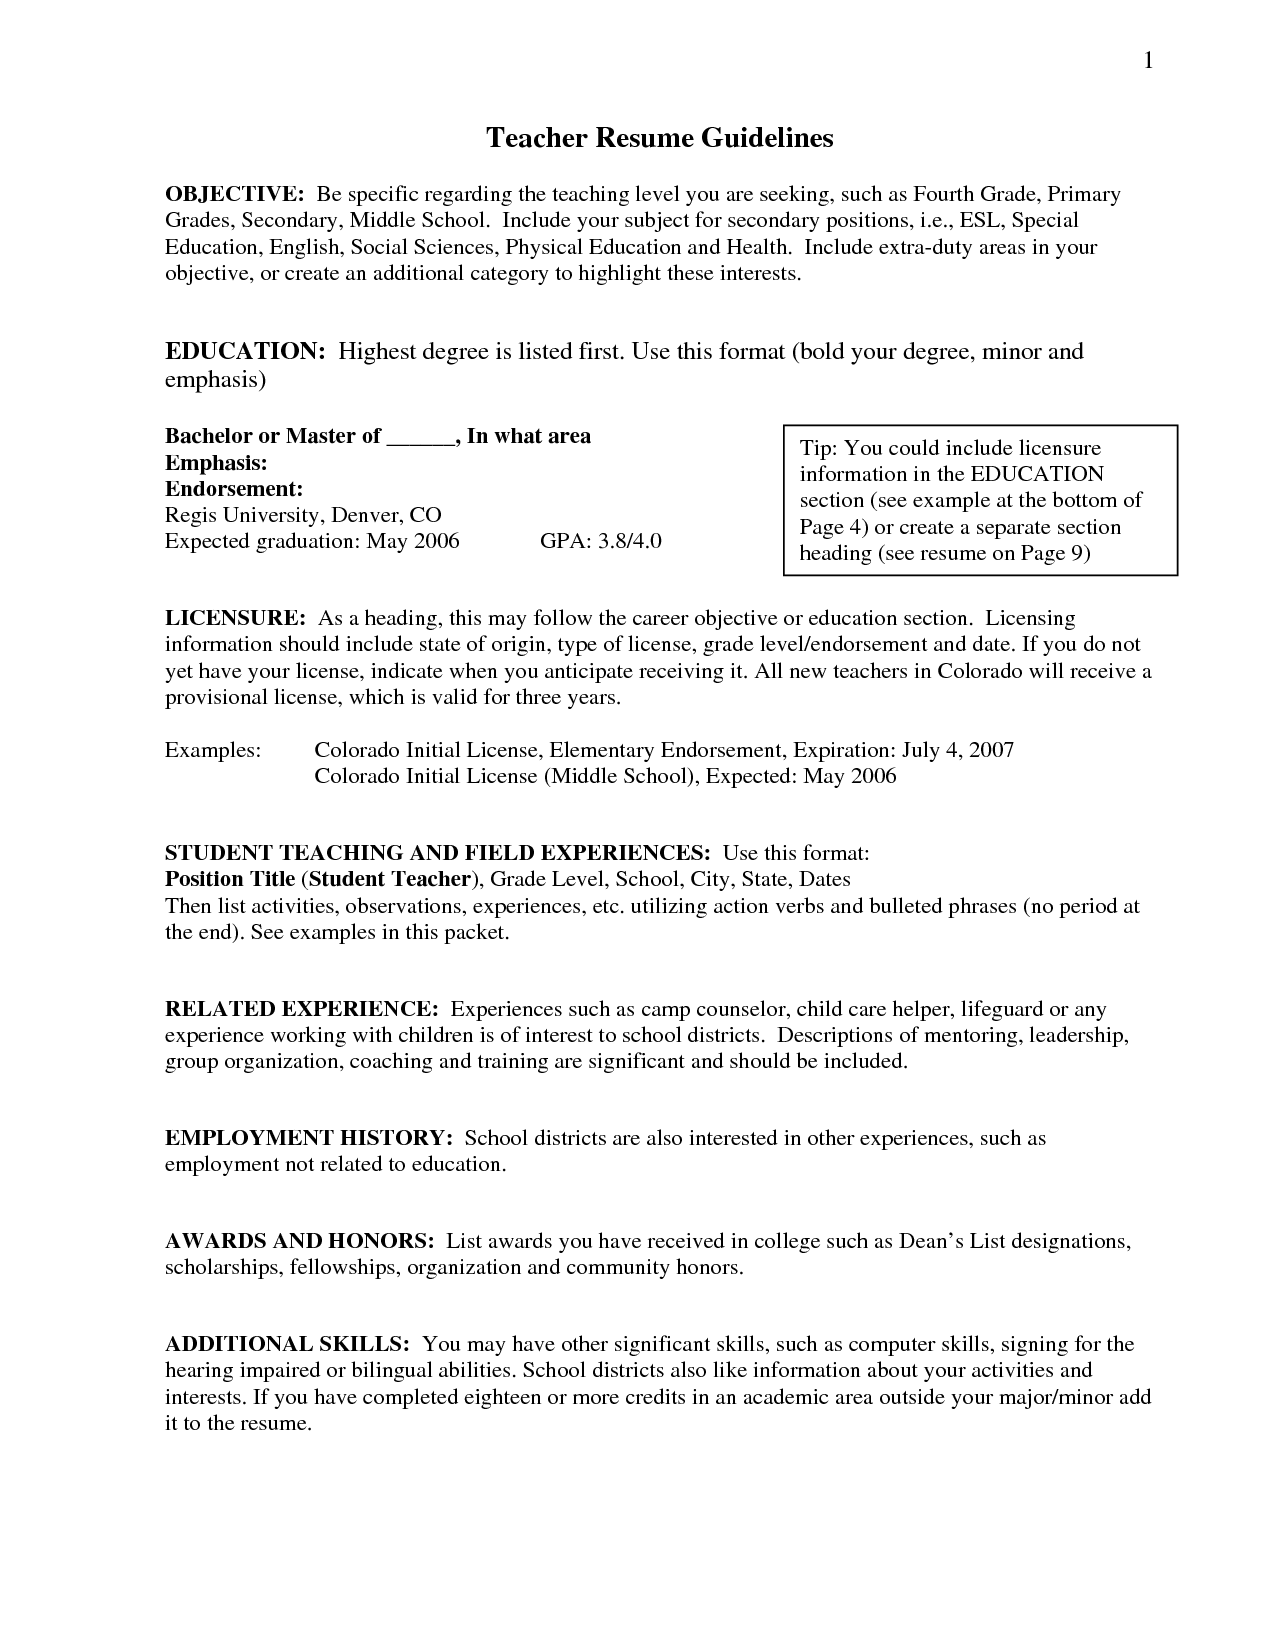 Teaching Resume Objective Pinjobresume On Resume Career Termplate Free  Pinterest